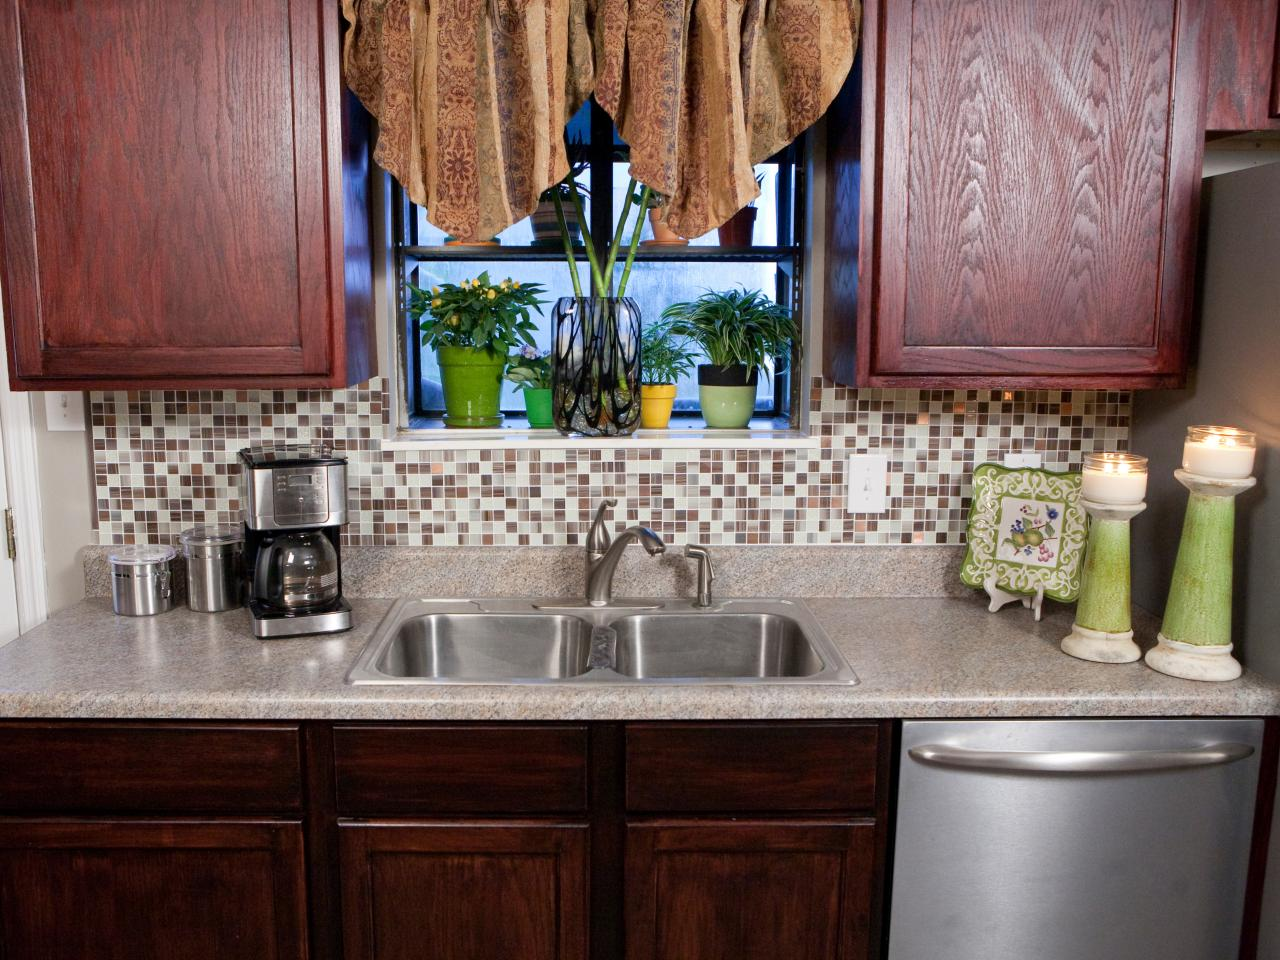 Original_DIY-Tile-S1-Before-0004-Kitchen_s4x3